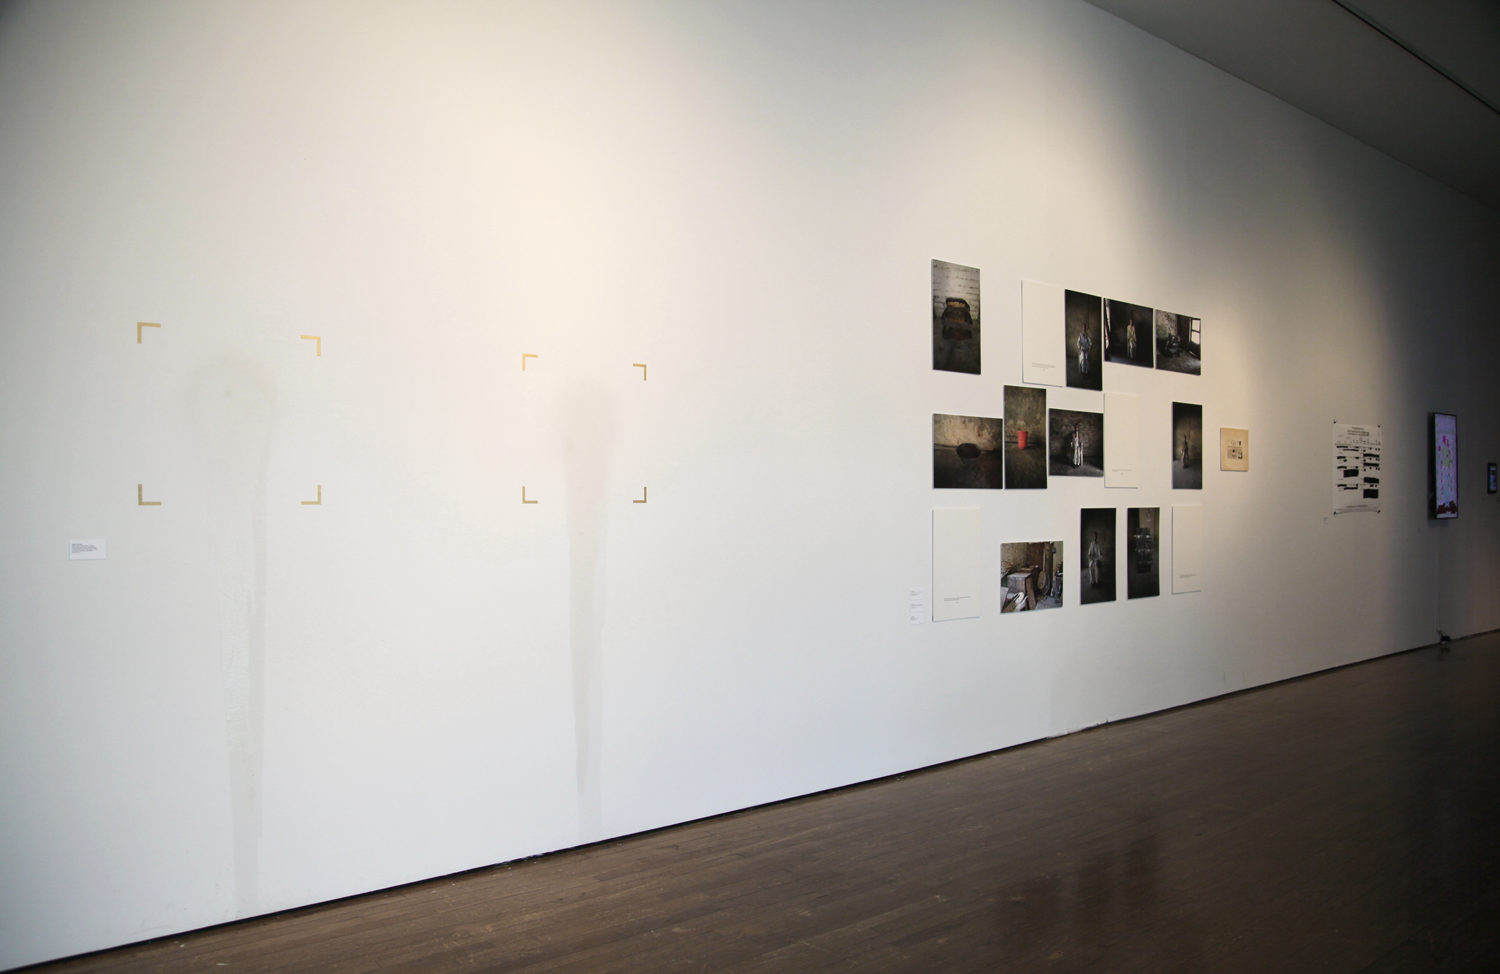 Exhibition view with Raja'a Khalid,  Black Agar, Black Agar  (2016) in foreground, photograph by Sadia Shirazi.